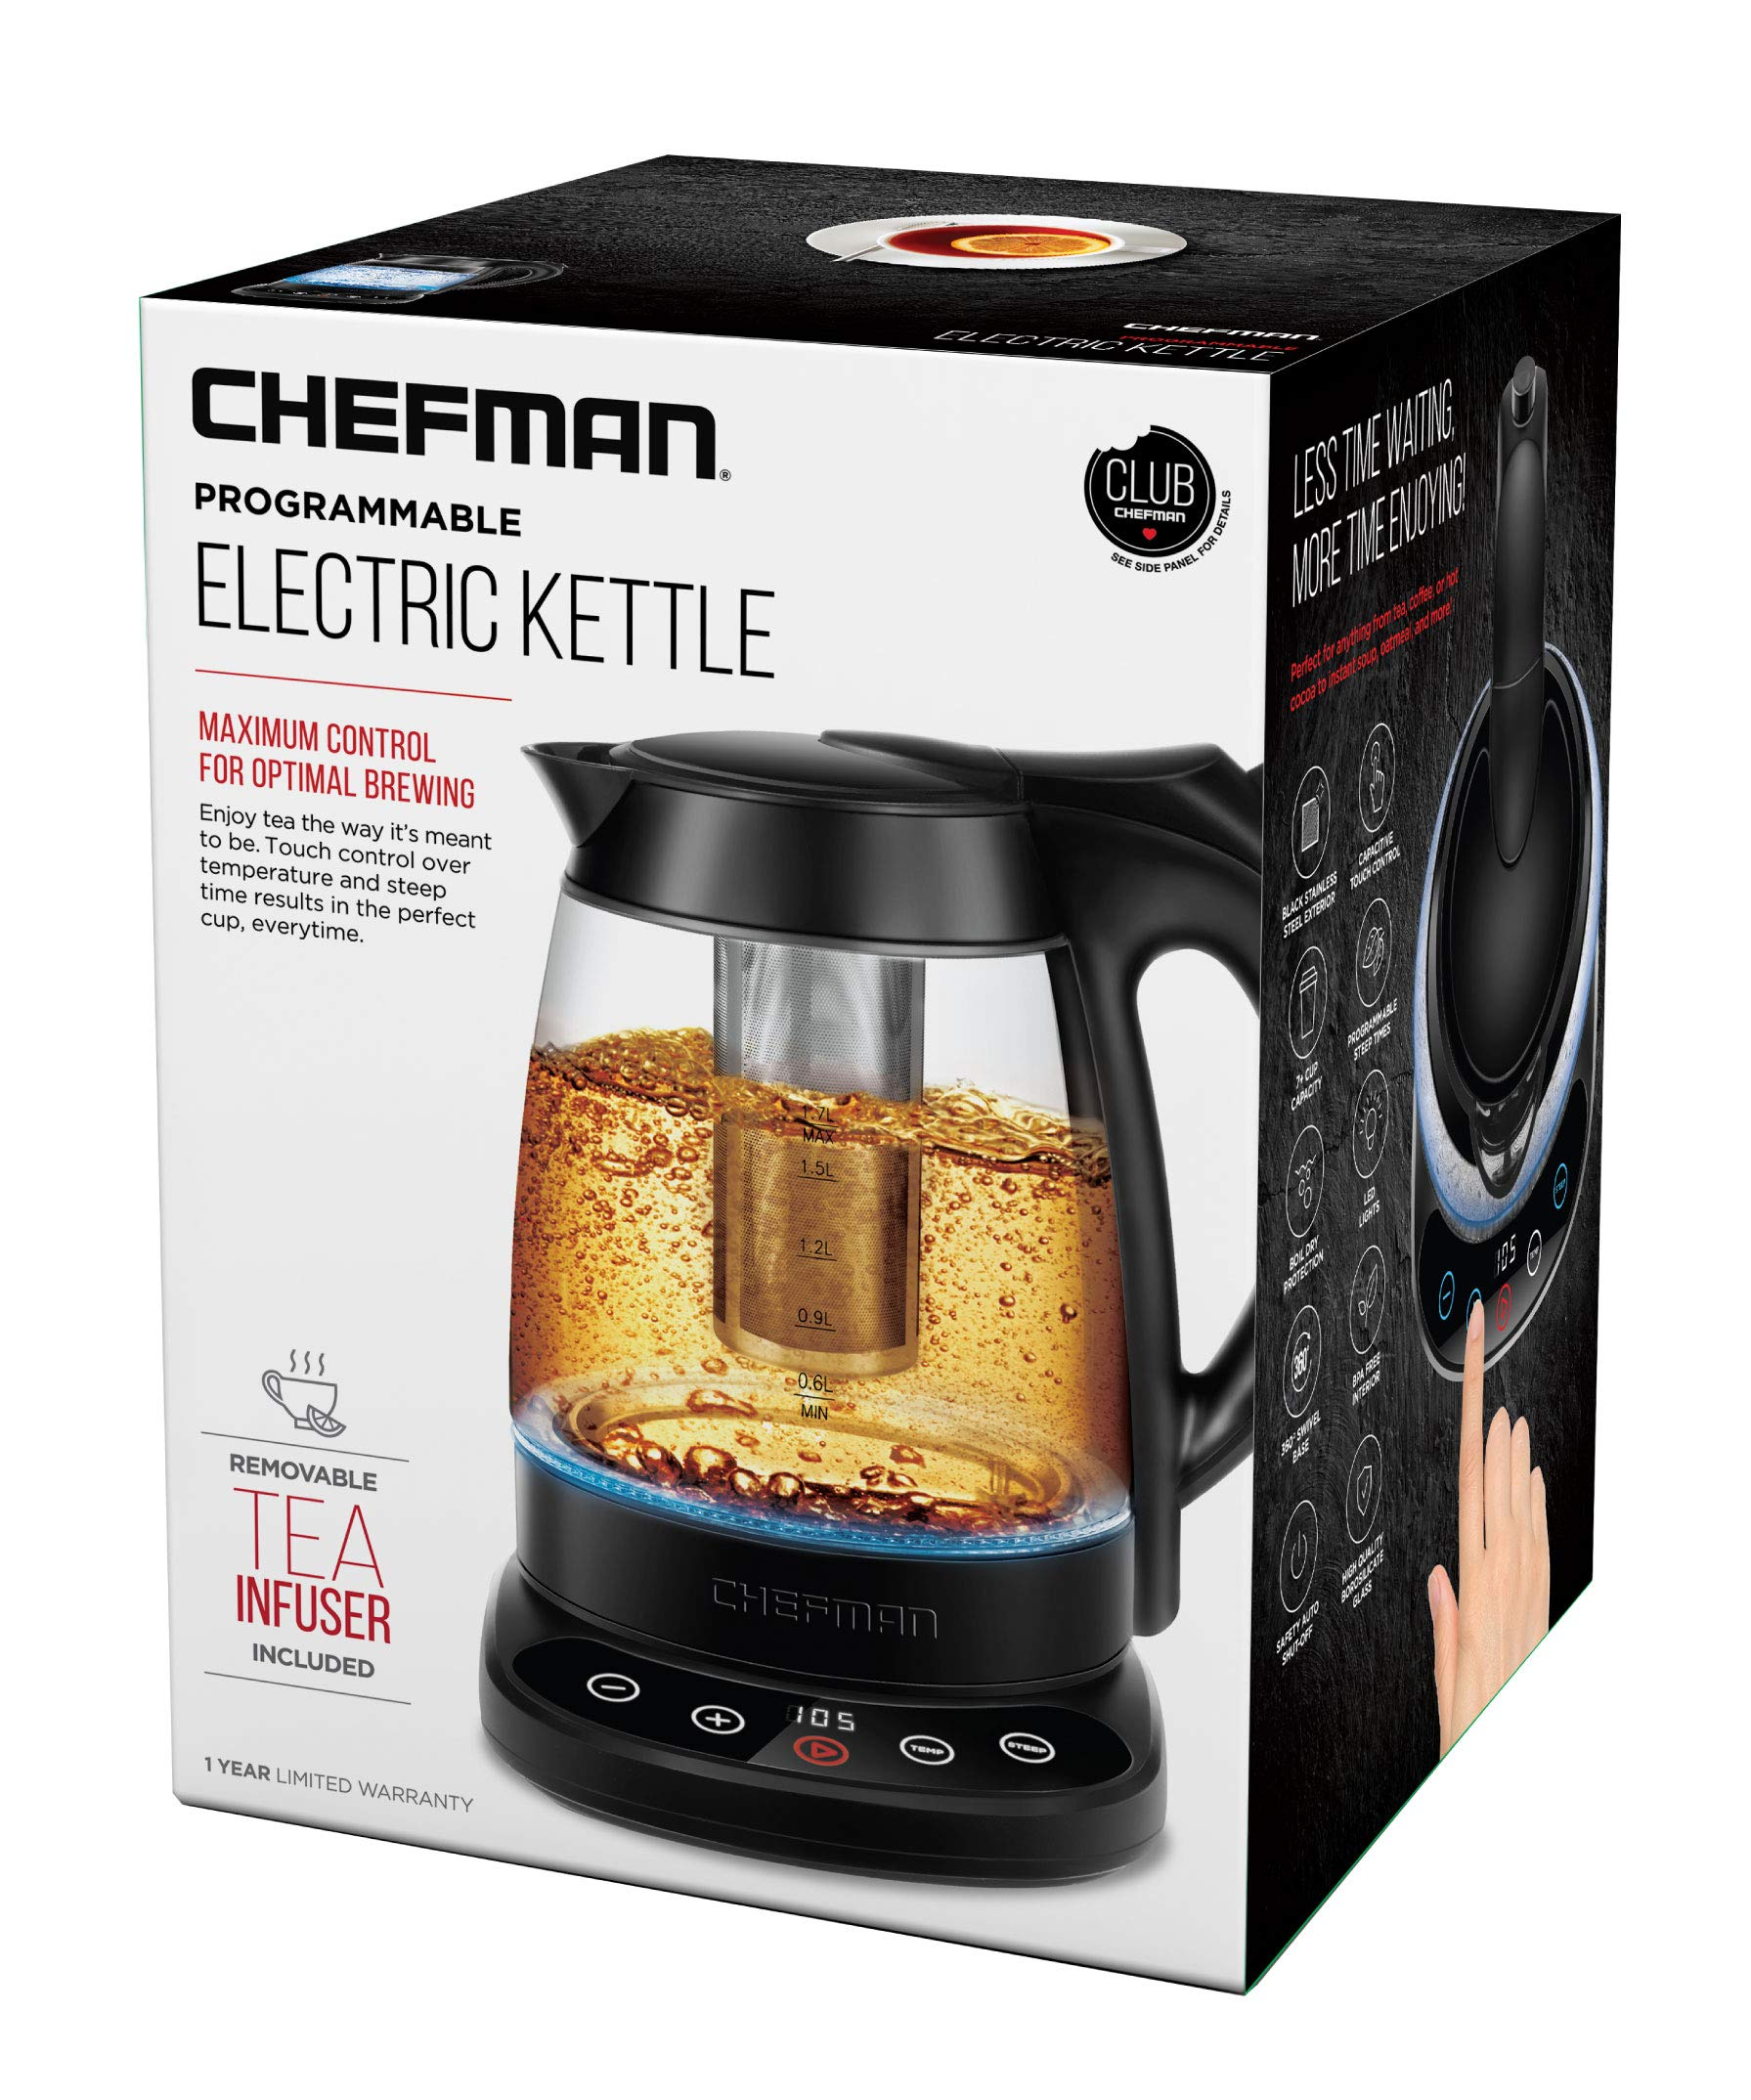 Chefman Programmable Electric Kettle Digital Display Removable Tea Infuser Included, Cool Touch Handle, 360° Swivel Base, BPA Free, 1.7 Liter/1.8 Quart by Chefman (Image #6)